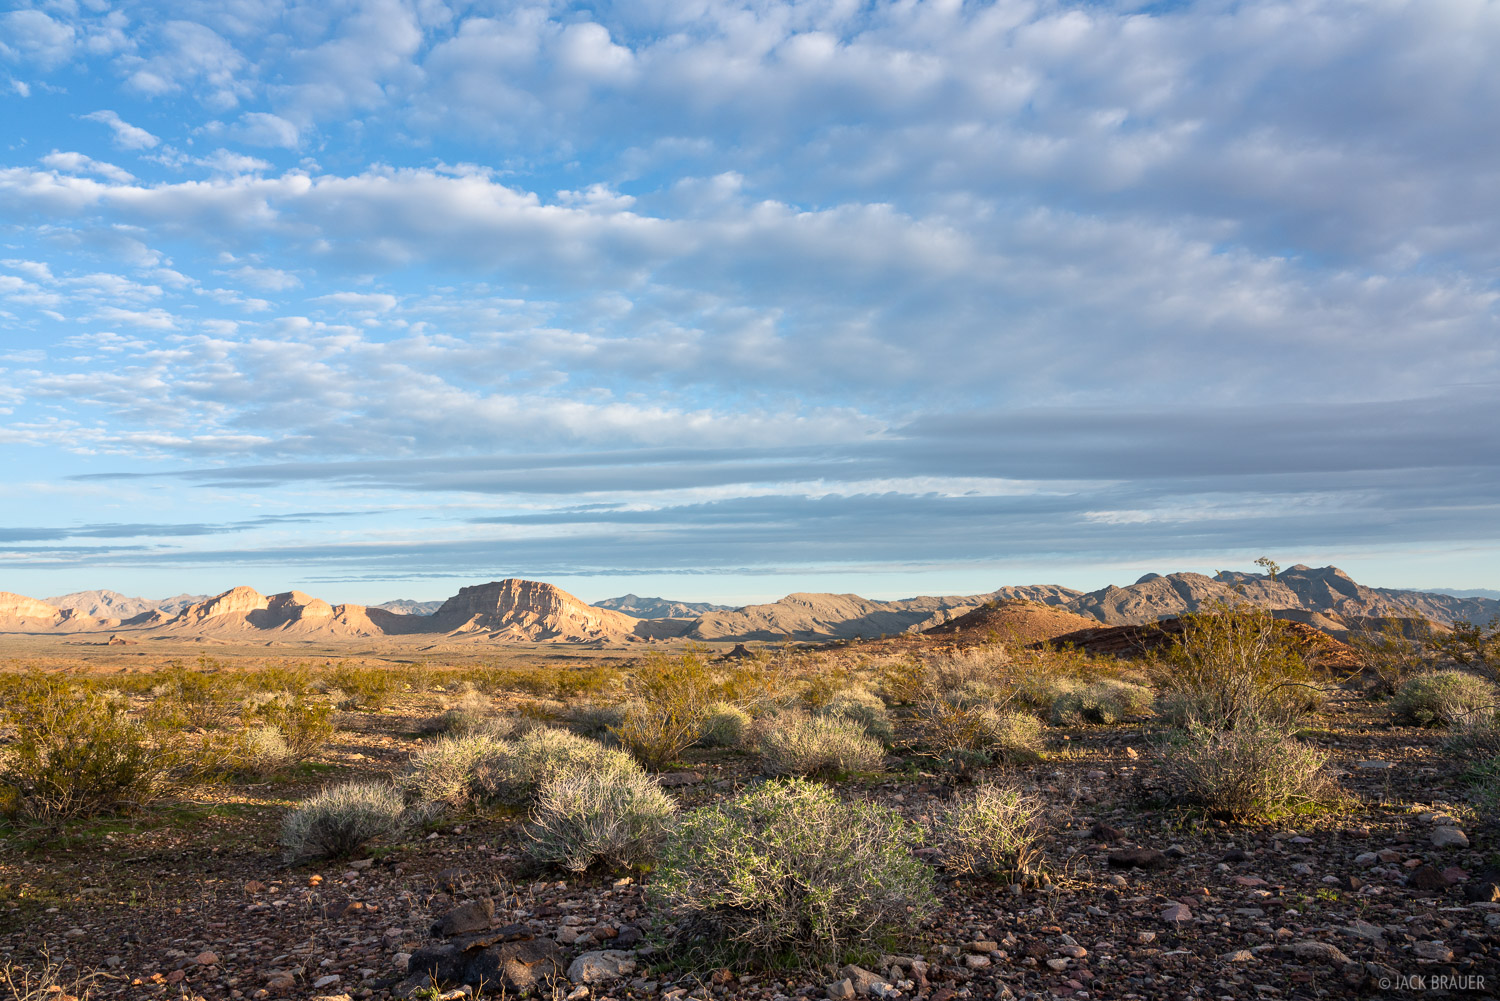 Morning in the Mojave Desert near Lake Mead National Recreation Area.